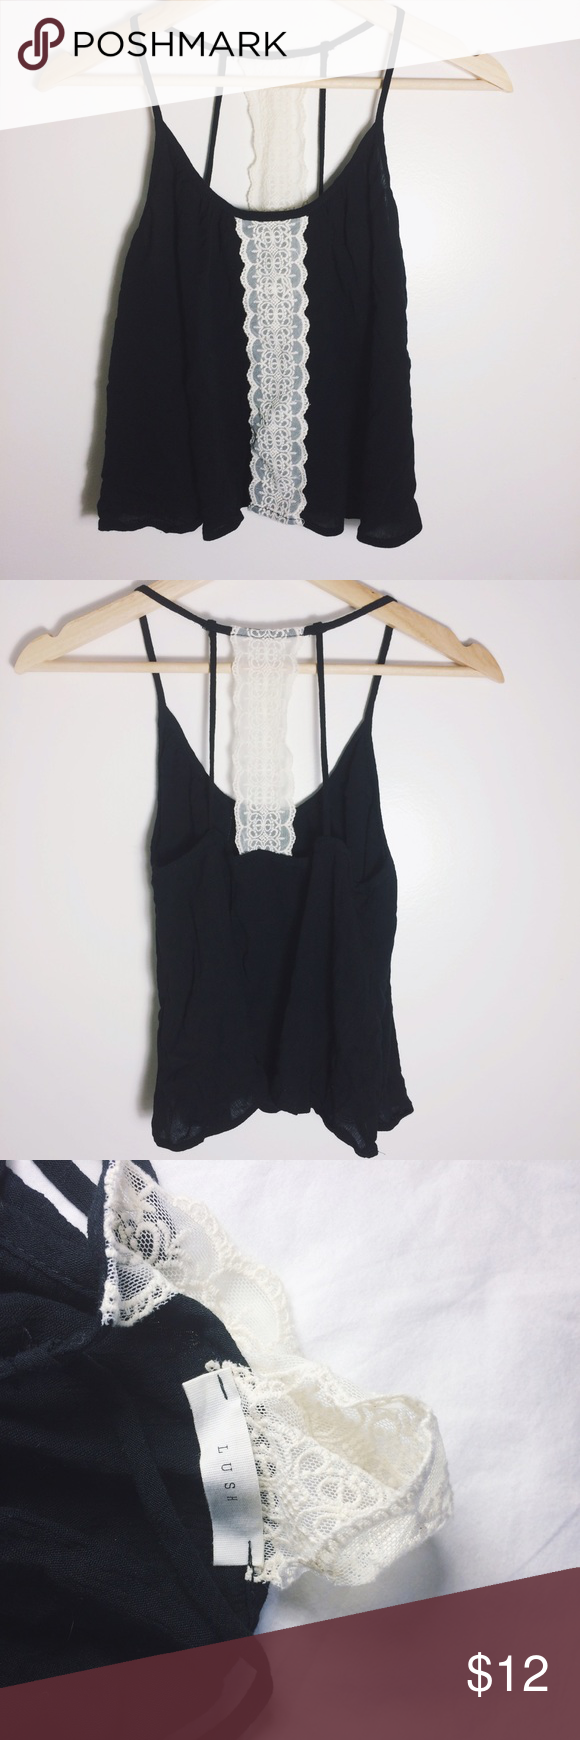 Lush Black Tank with Lace Details Beautiful black tank with lace details! Never worn, NWOT. Flowy tank with a great fit 💕 perfect for summer Lush Tops Tank Tops